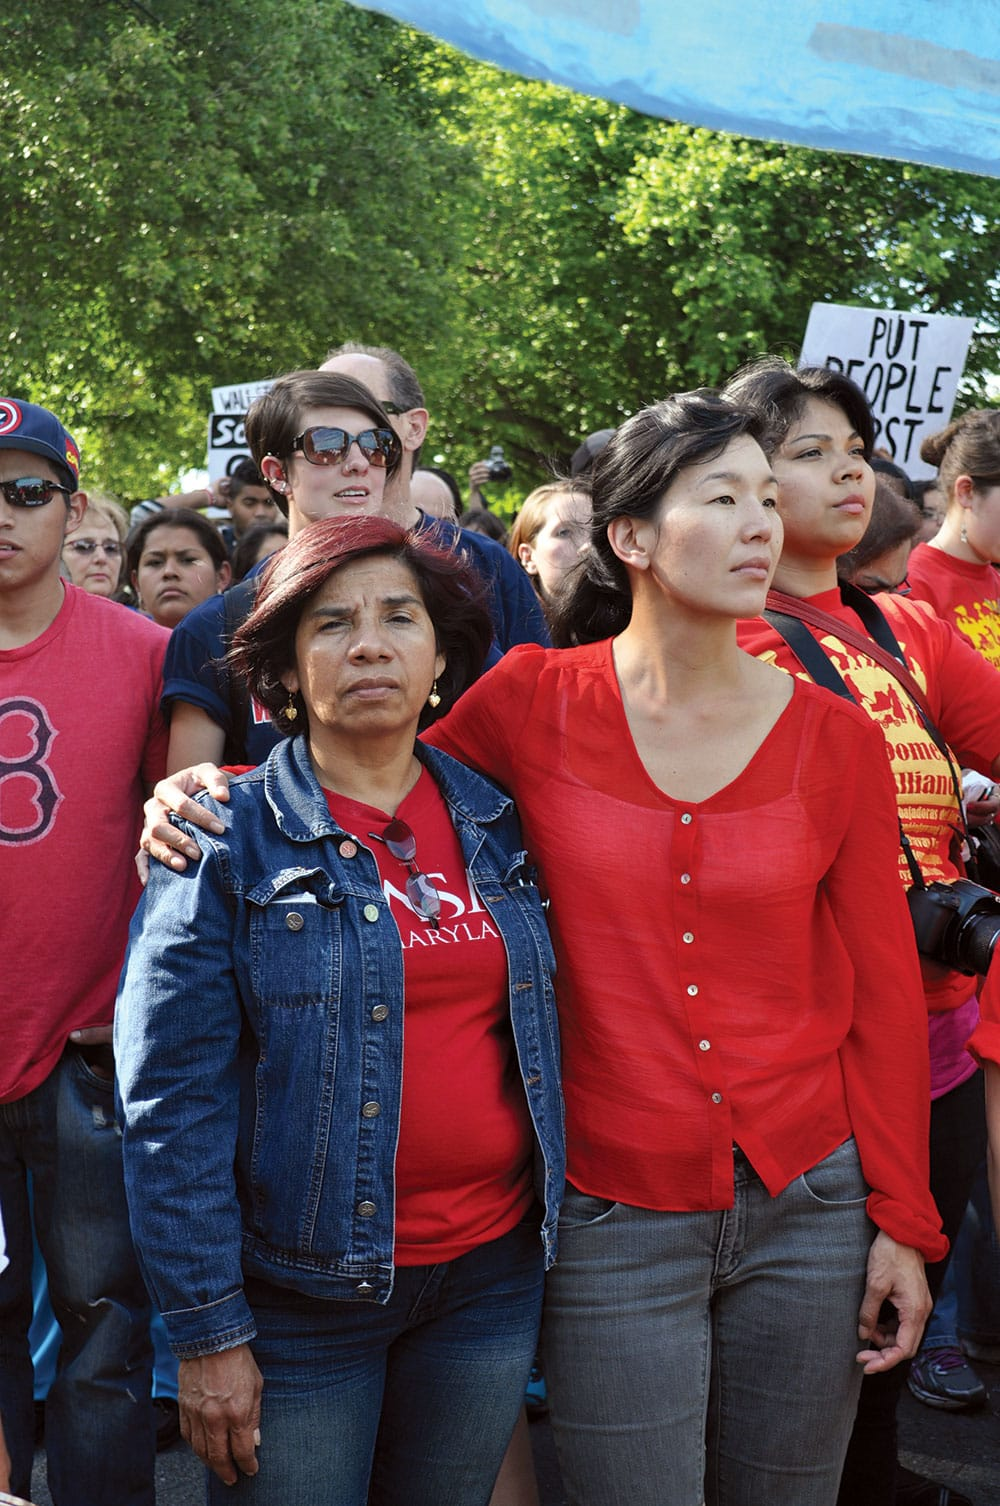 Ai-jen Poo (right) marching with the National Domestic Workers Alliance in Washington. She fights for living wages, benefits, and legal protections for caregivers and other domestic workers. Photo by Bekah Mandell.